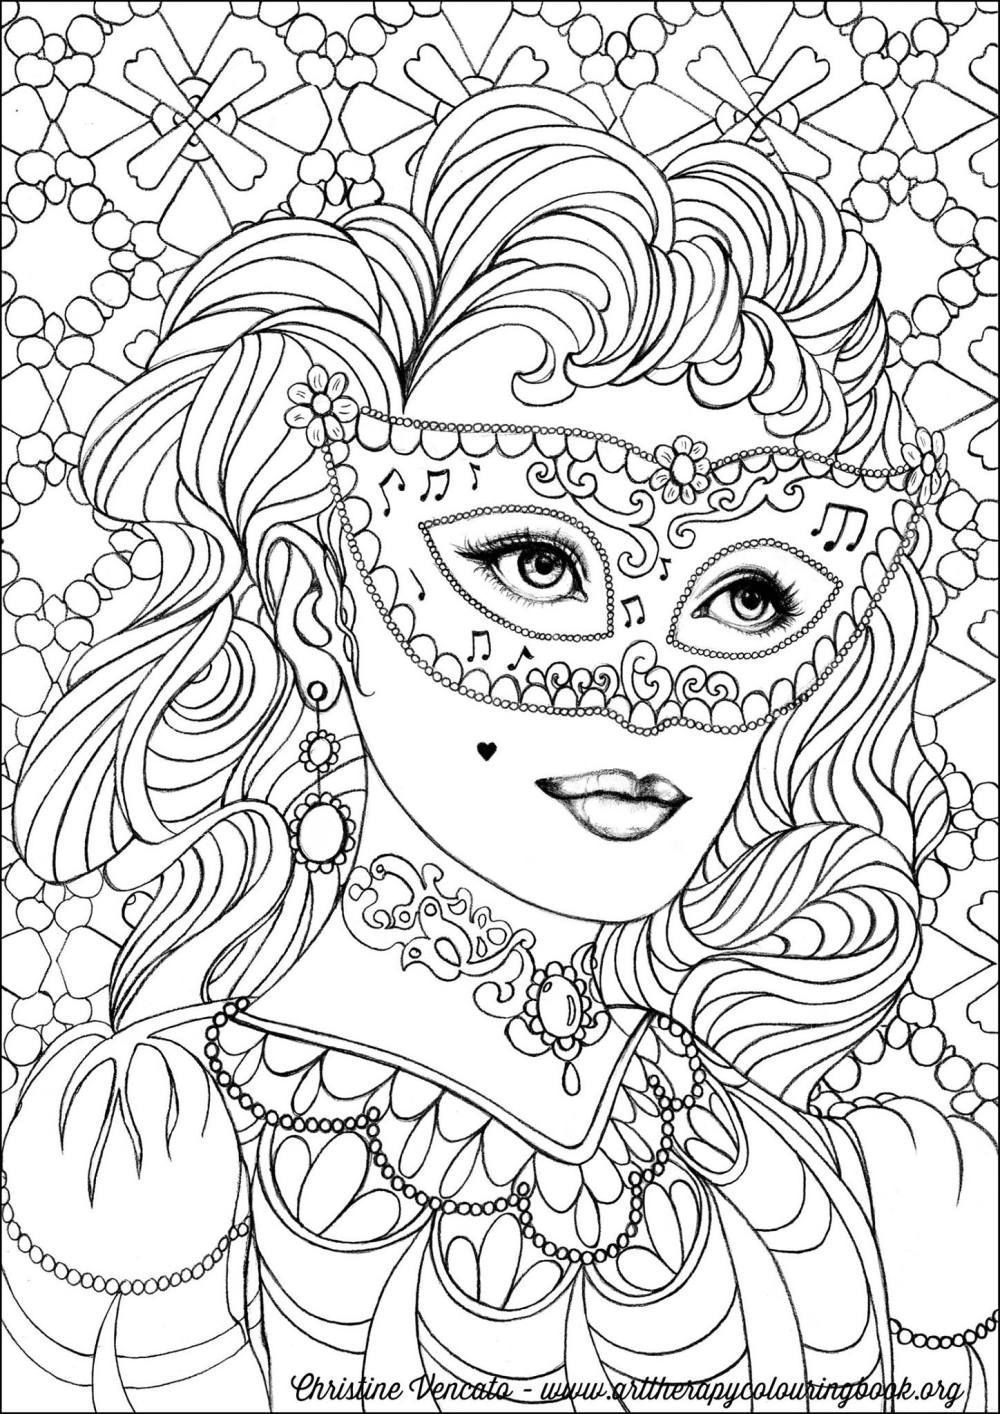 Free Coloring Page From Adult Coloring Worldwide. Art by ... | free fun coloring pages for adults